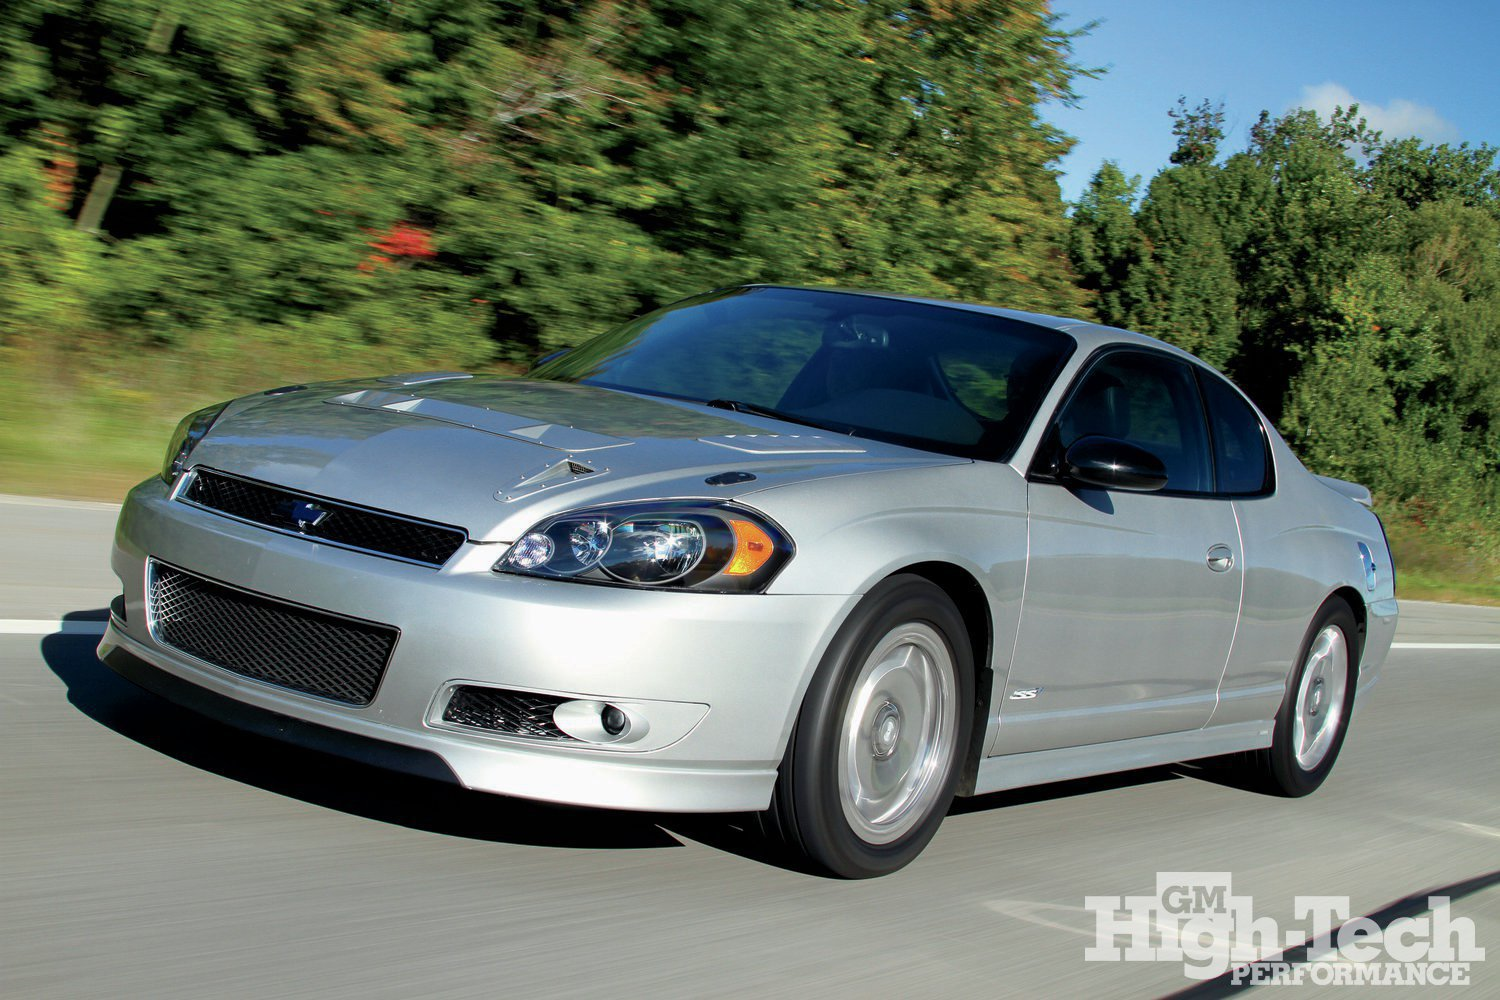 2007 Chevrolet Monte Carlo SS - GM High-Tech Performance Magazine